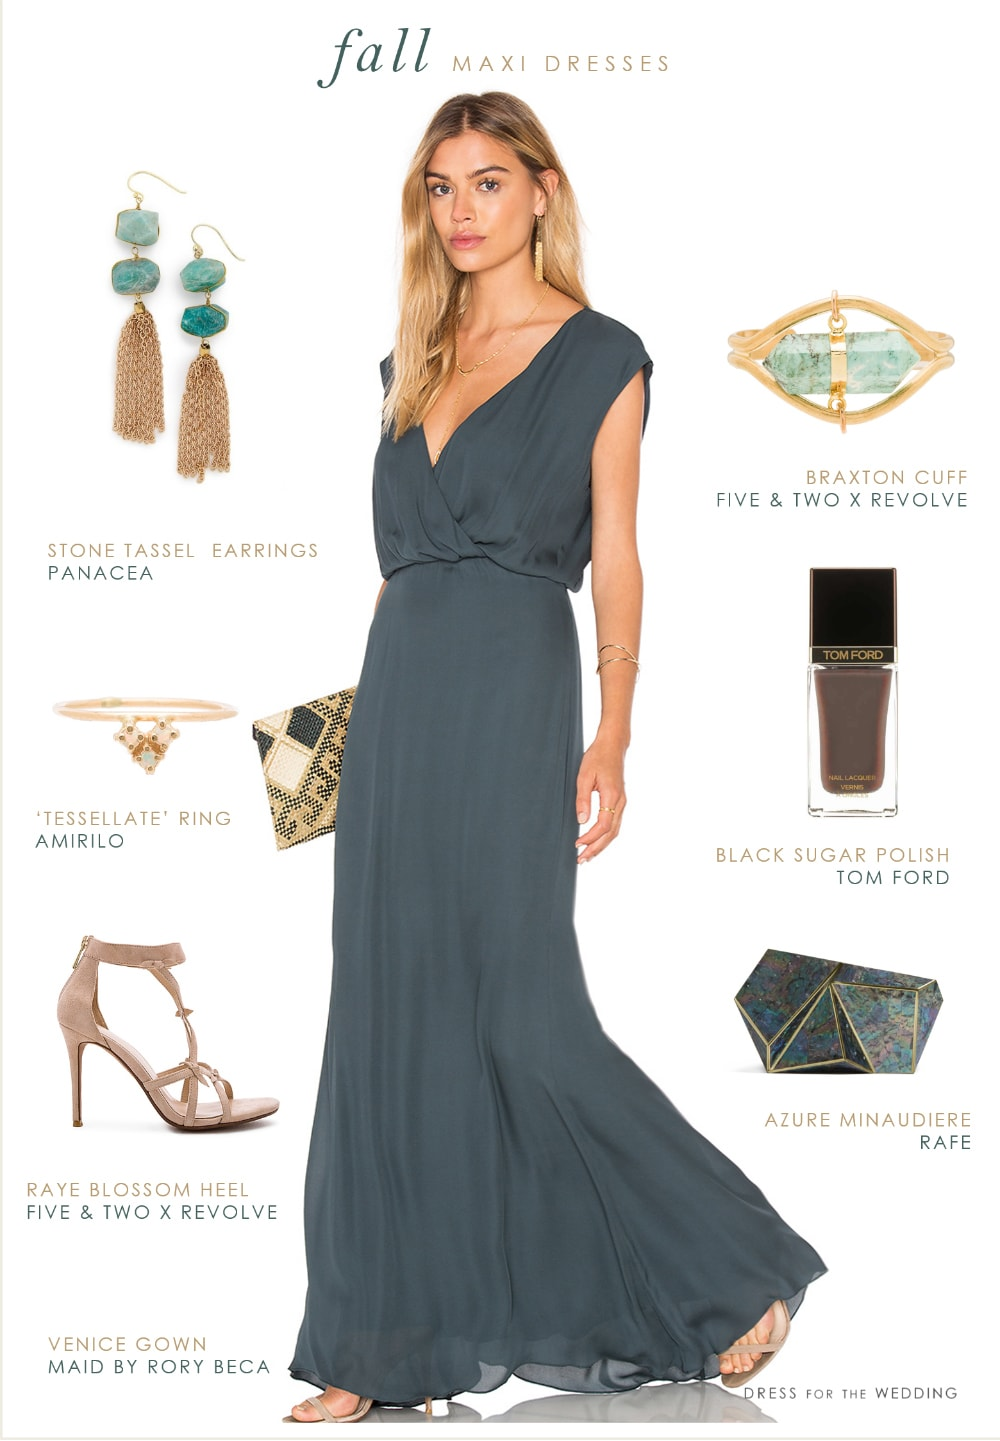 Maxi dresses for fall dress for the wedding for Maxi dress for a wedding